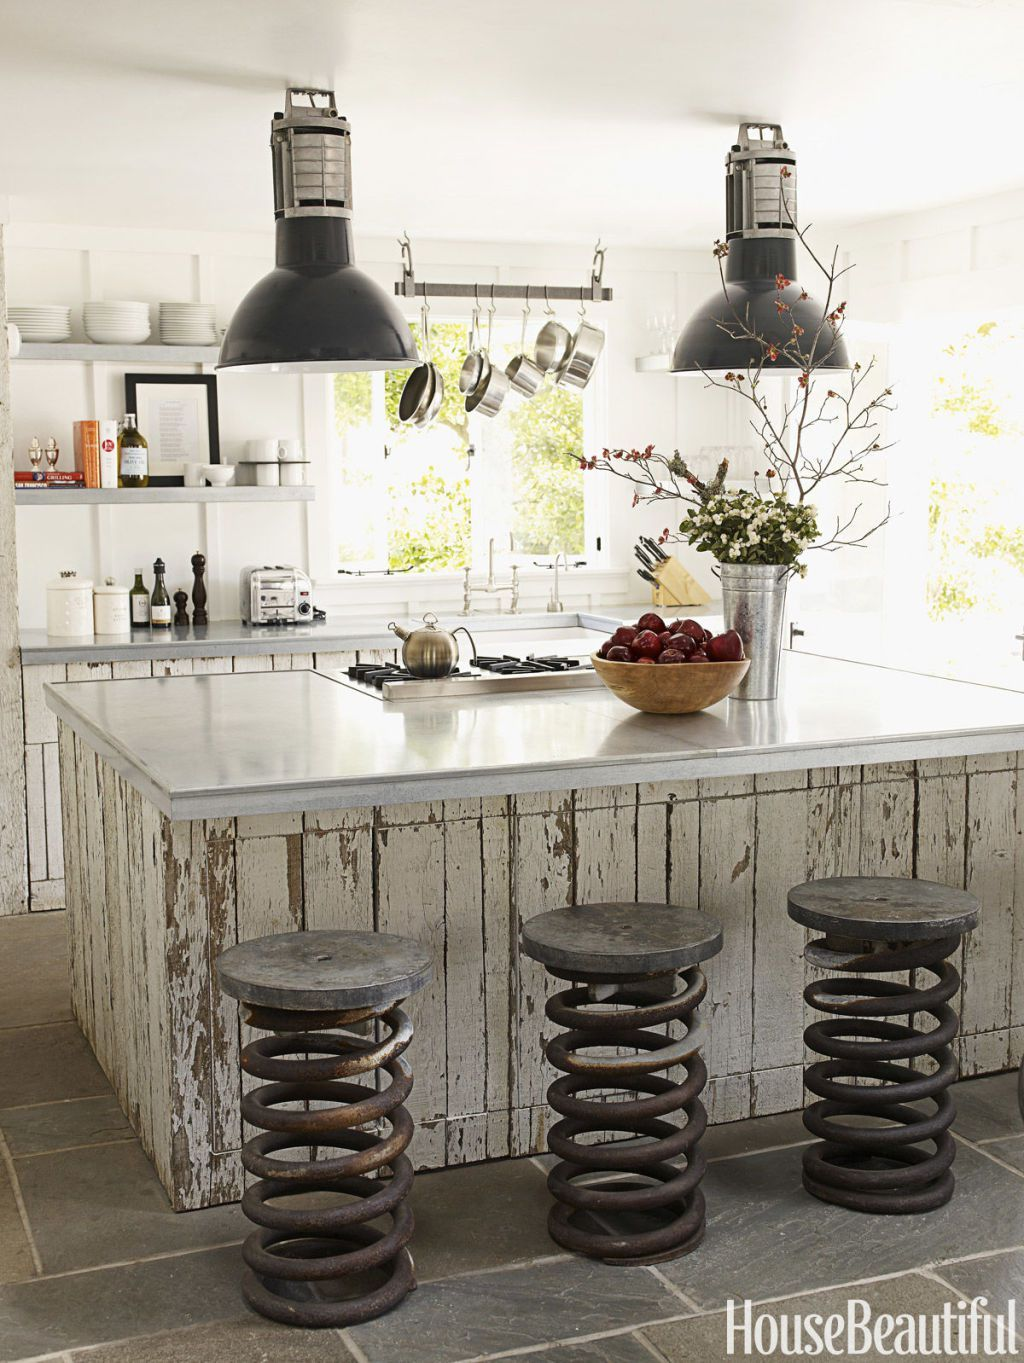 Kitchen Decor 15 Best Rustic Kitchens Modern Country Rustic Kitchen Decor Ideas